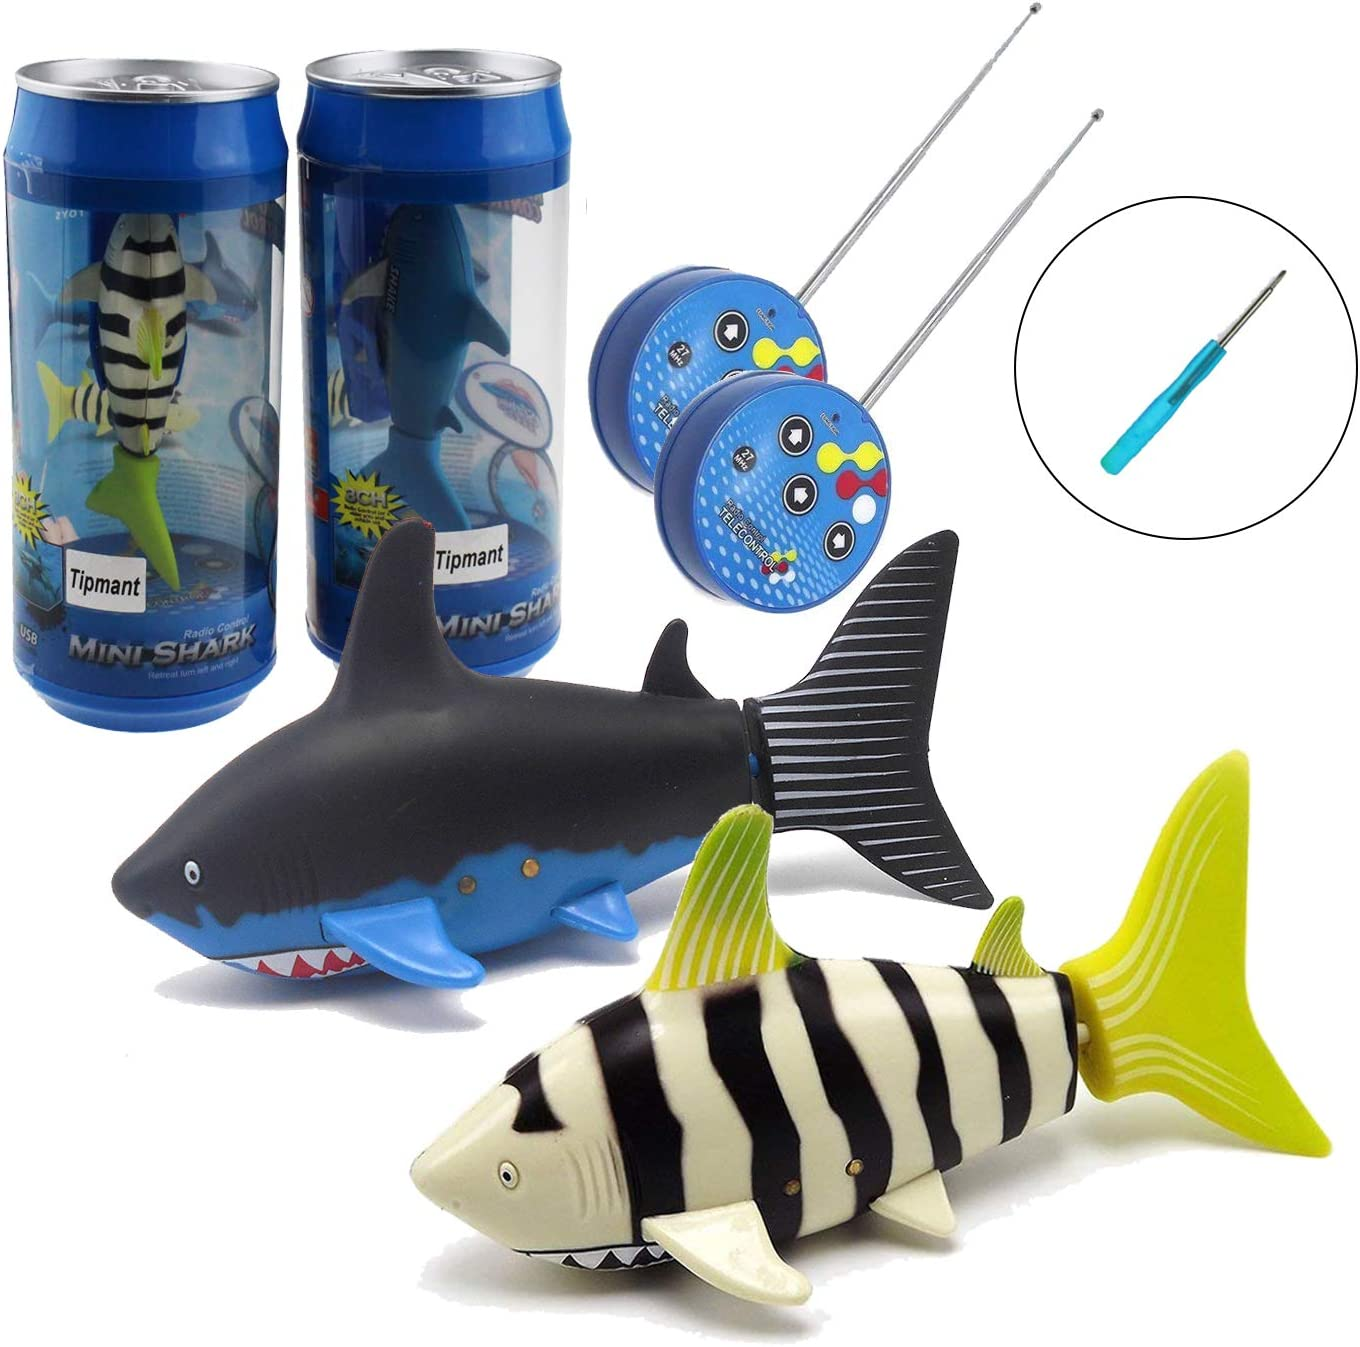 Tipmant Mini RC Fish Shark Toys Radio Remote Control Boat Ship Electronic Pet Animal Swim Water Pool Tub Bathtub Kids Gifts - 2 Pack (Black & Yellow)